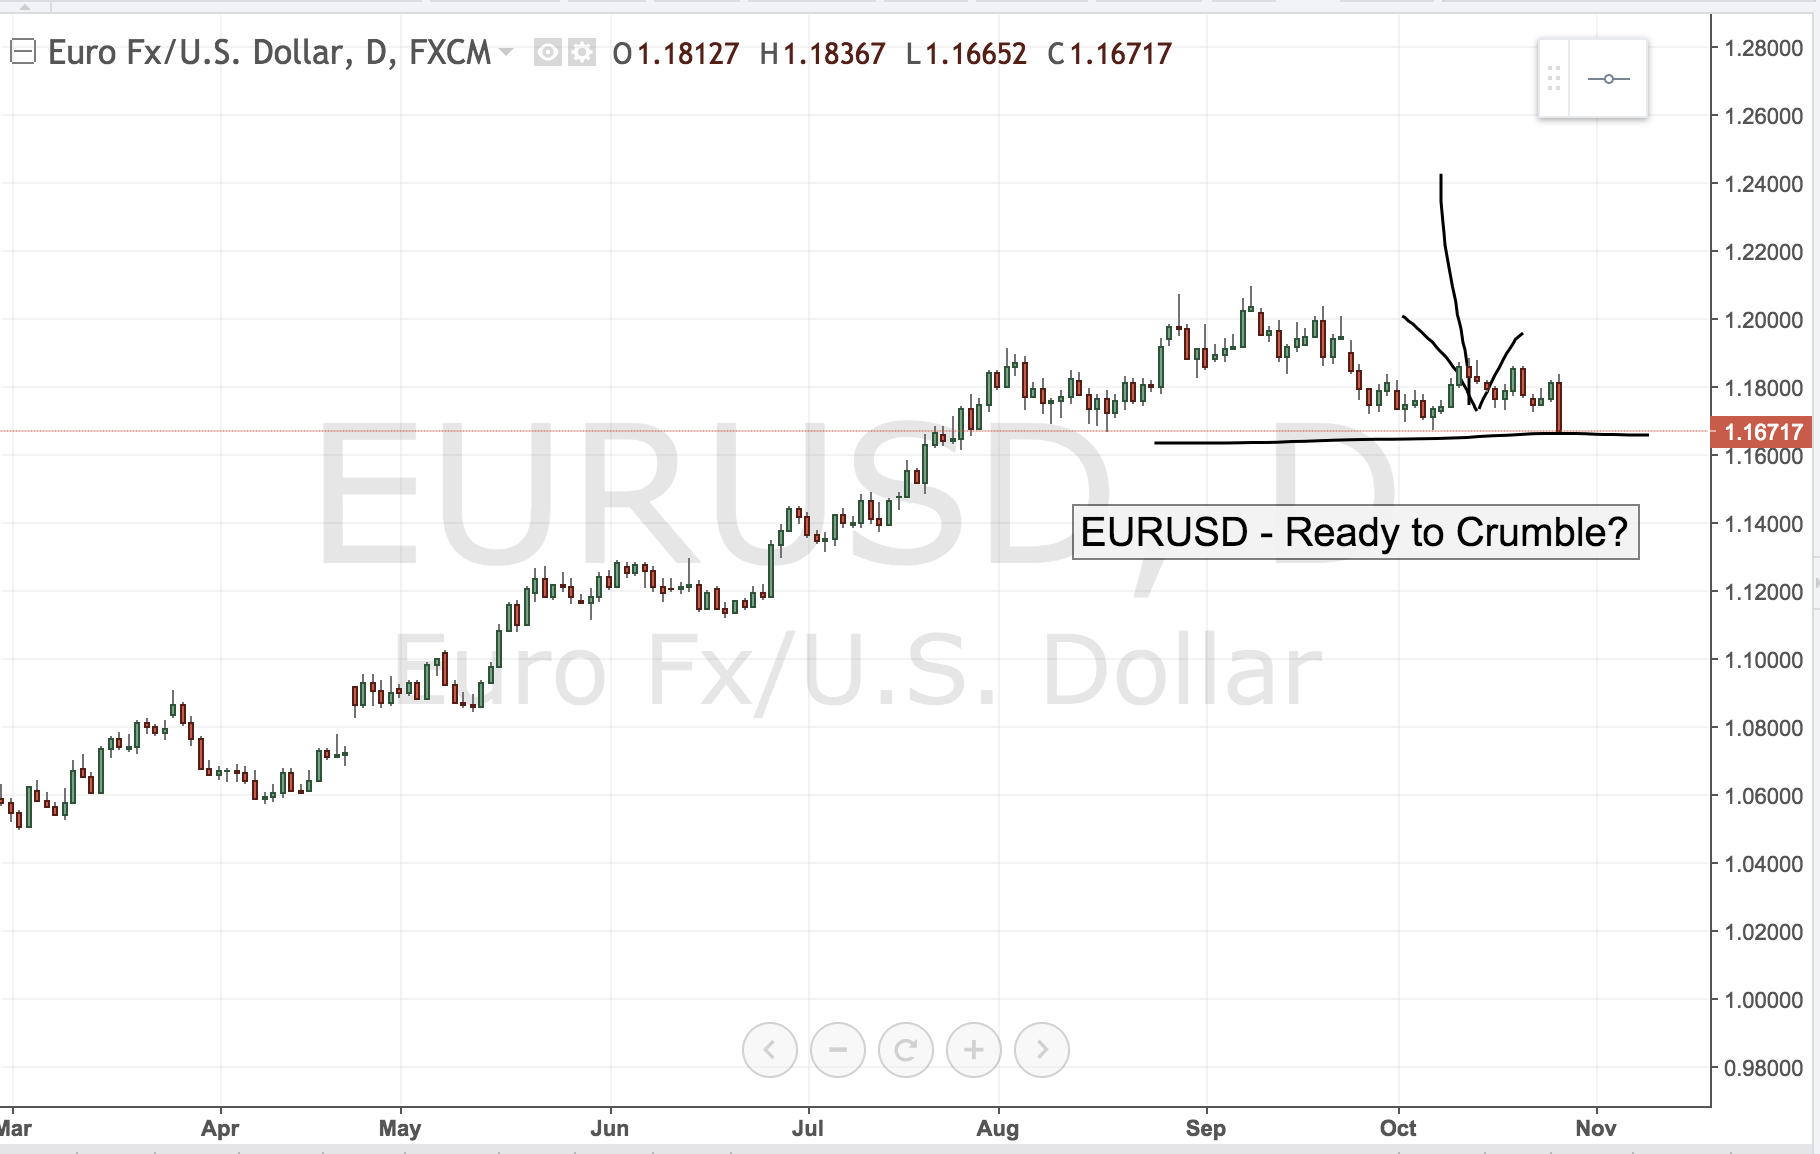 EURUSD- Ready to Crumble?